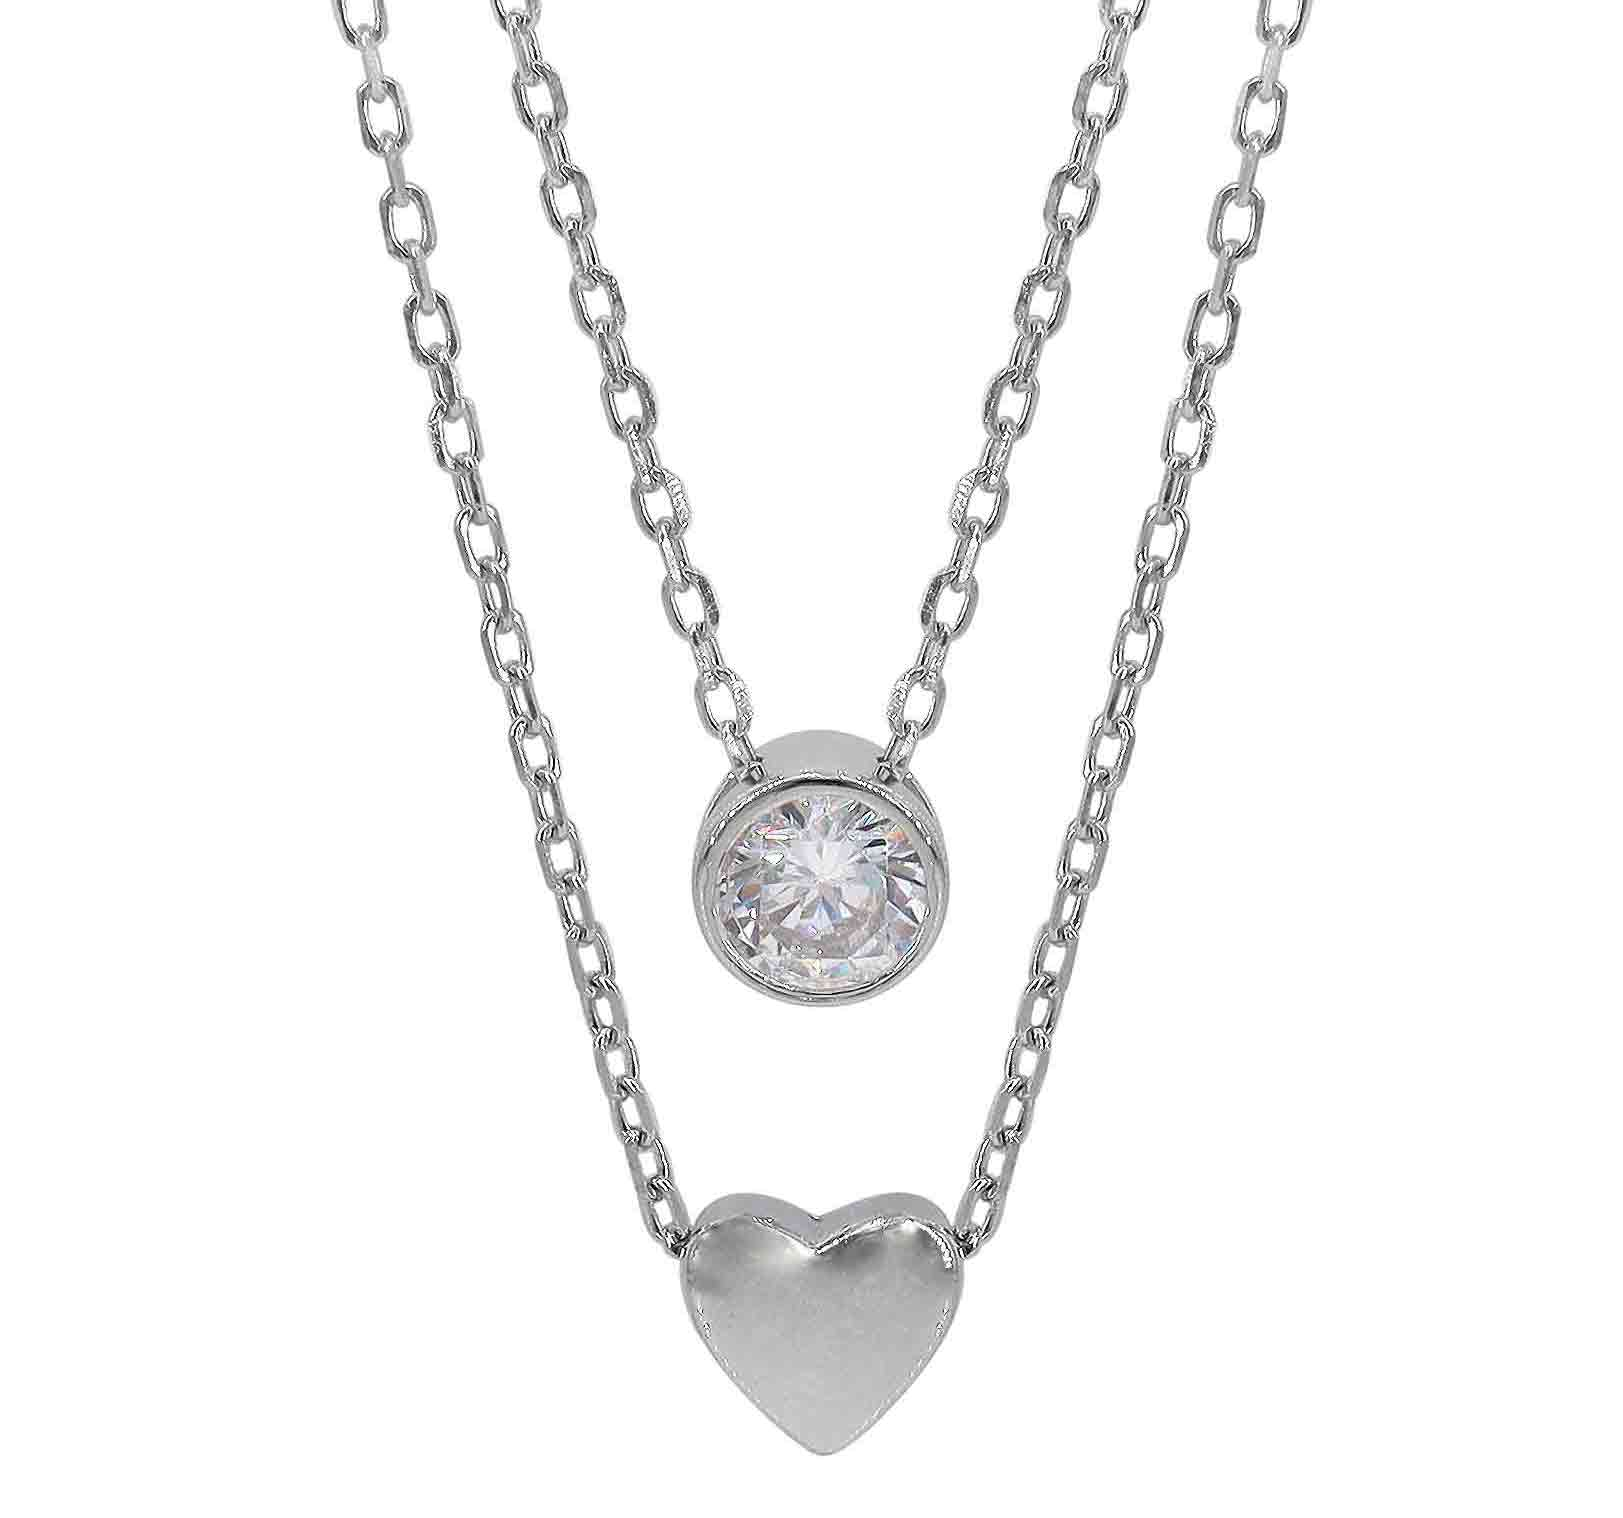 22x20MM One Love Heart Rhodium-Plated Sterling Silver Antiqued Pendant Necklace,18 CZ Two Hearts